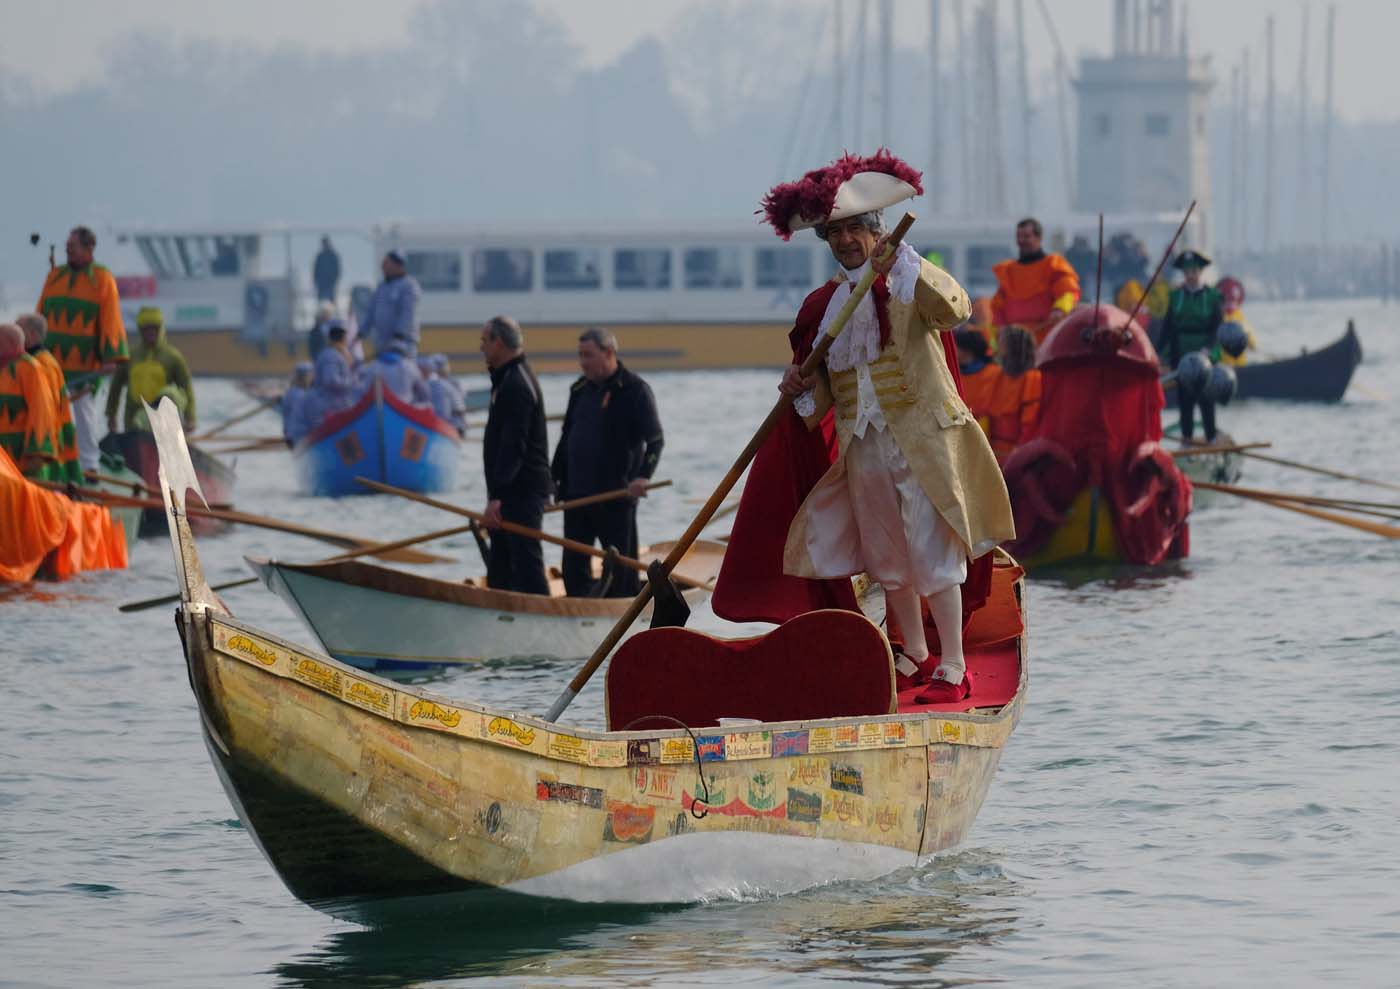 Venetians row during the masquerade parade on the Grand Canal during the Carnival in Venice, Italy January 28, 2018. REUTERS/Manuel Silvestri